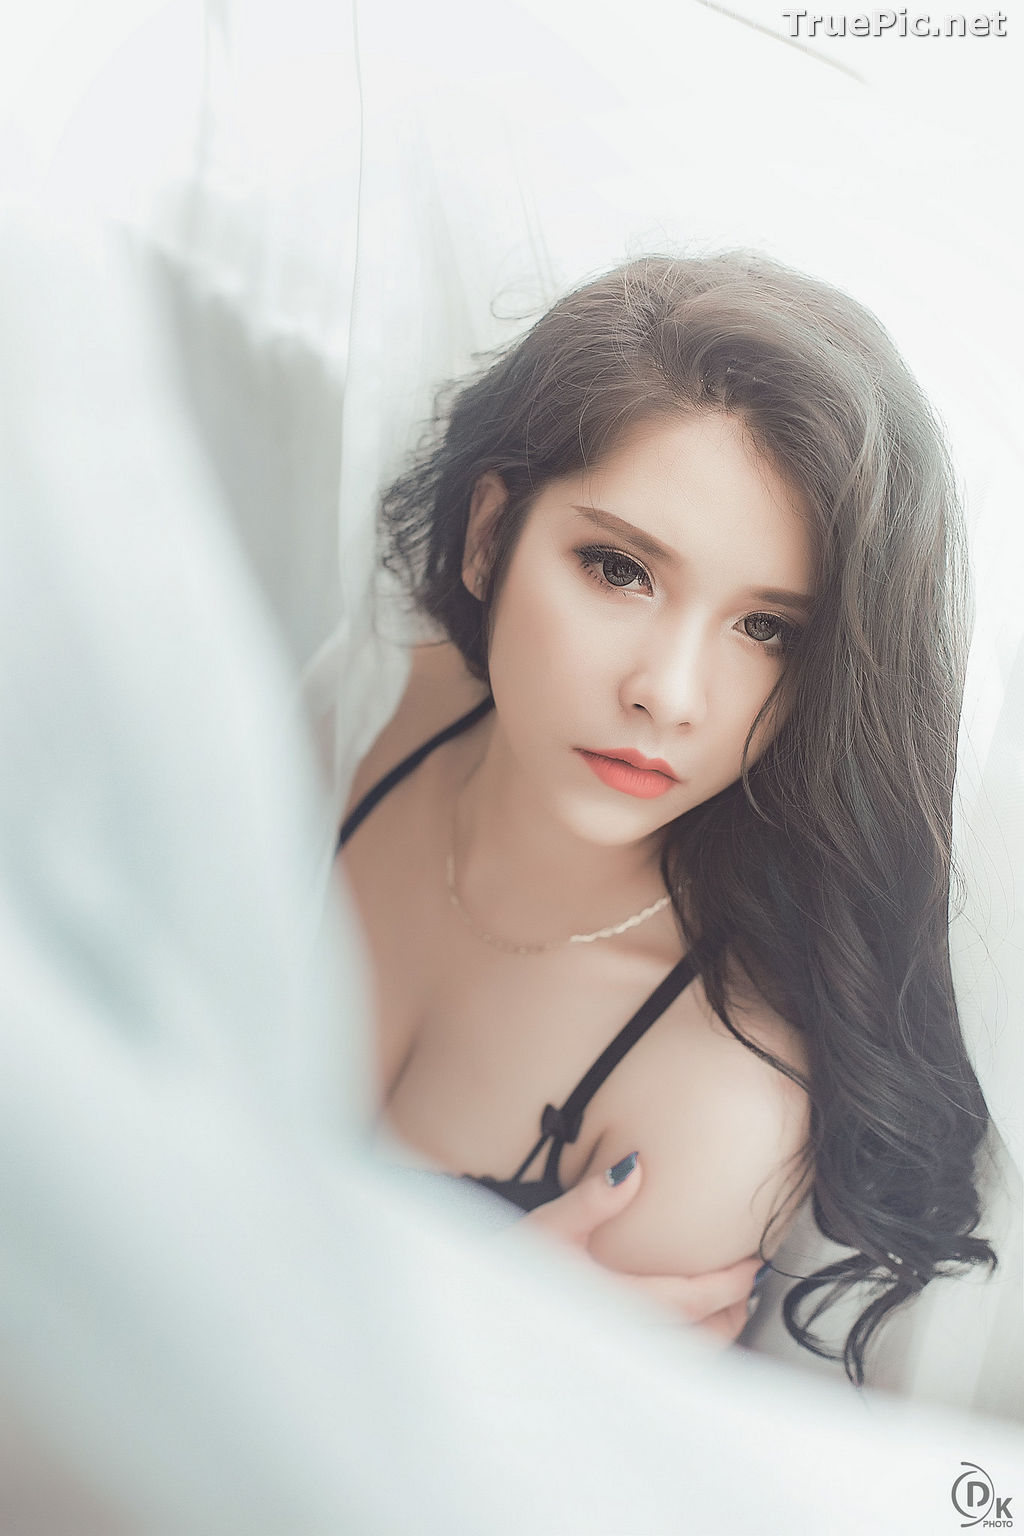 Daily Cool Pictures Gallery: Beautiful Vietnamese Girls Part 4